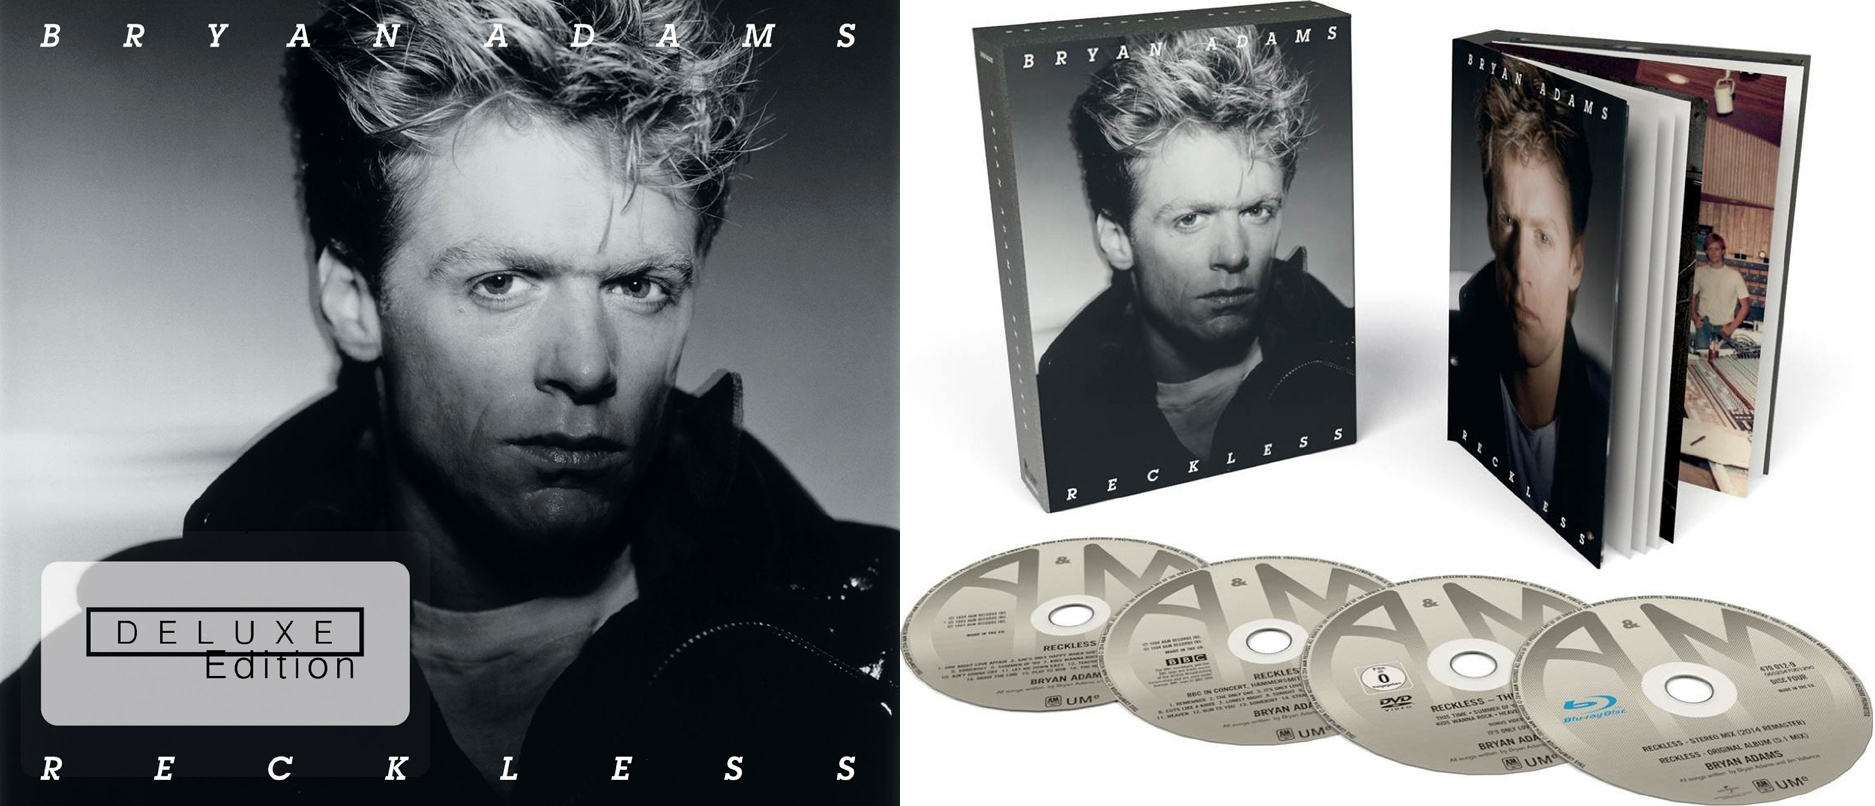 Reckless 30th anniversary edition axs.